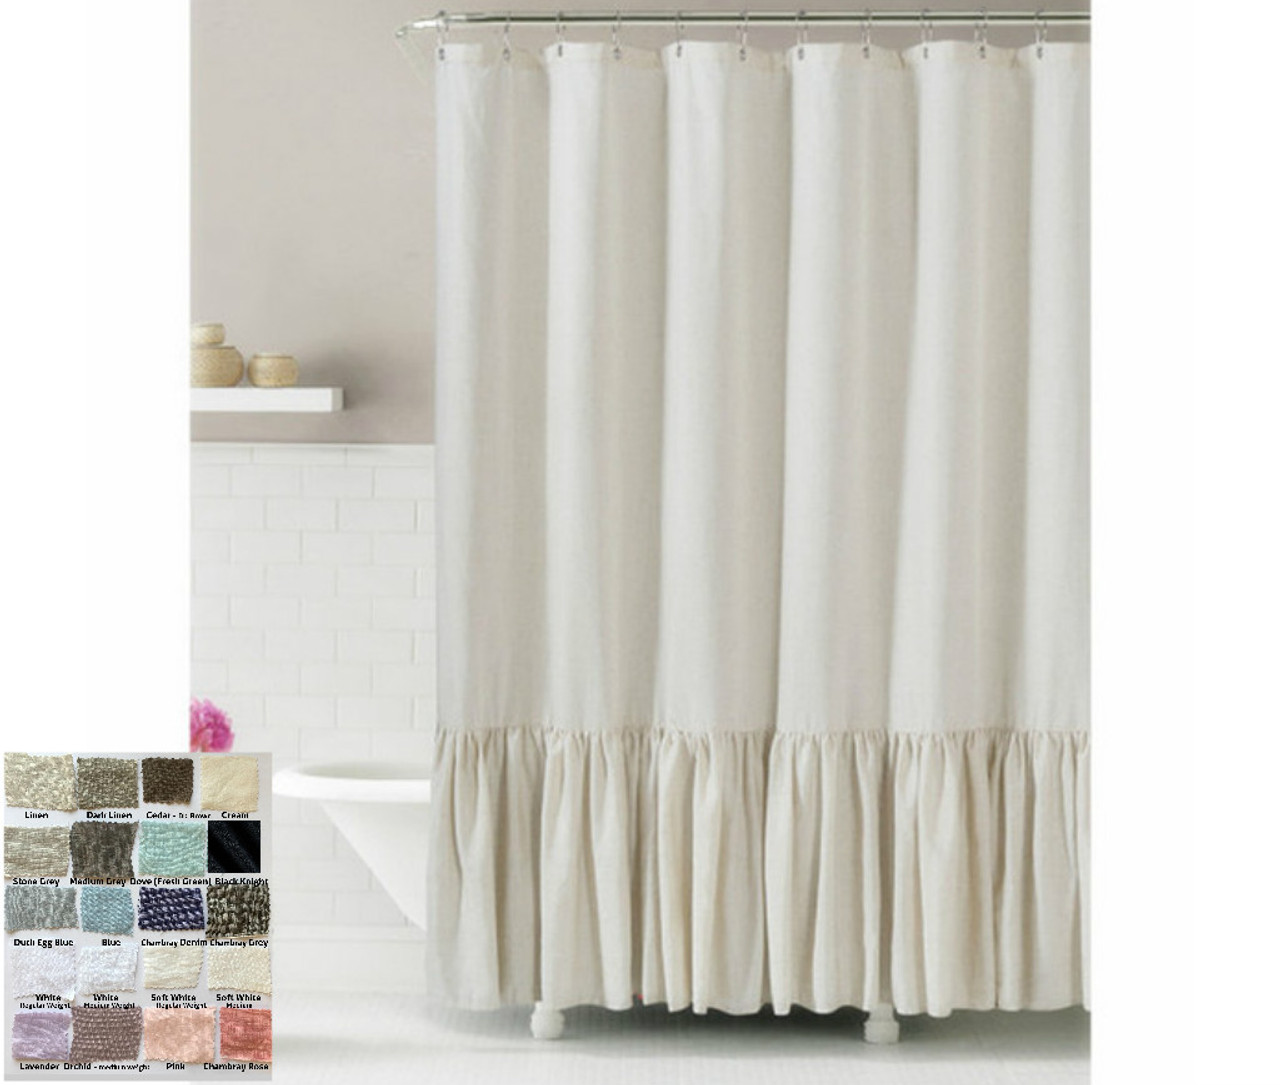 Linen Shower Curtain With Mermaid Long Ruffles Pick Color